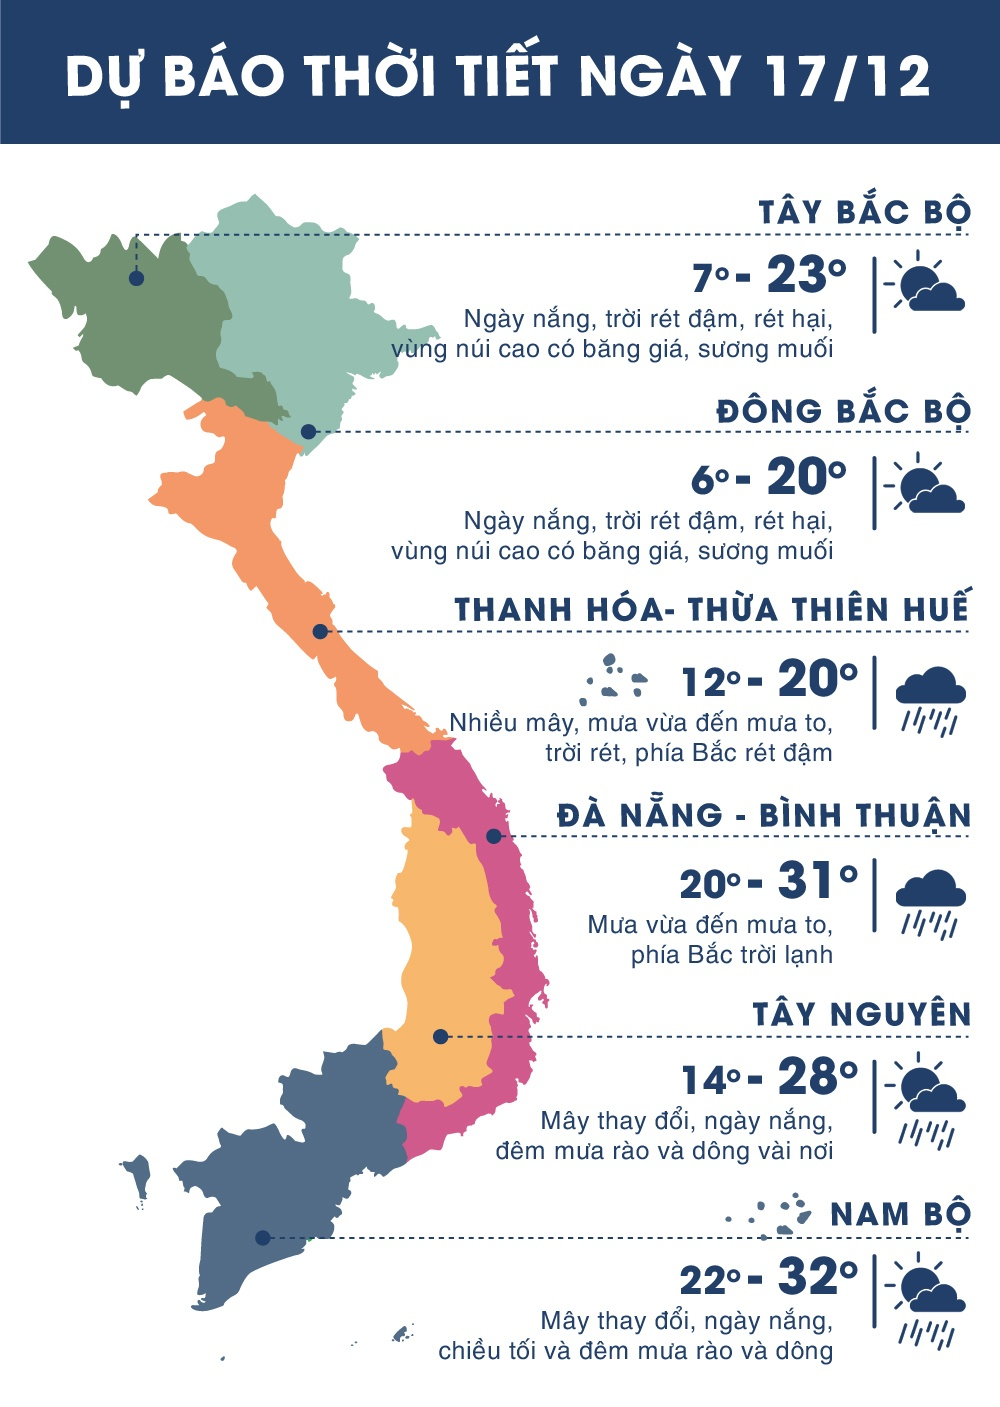 Thoi tiet ngay 17/12: Toan mien Bac ret dam, Ha Noi duoi 9 do C hinh anh 1